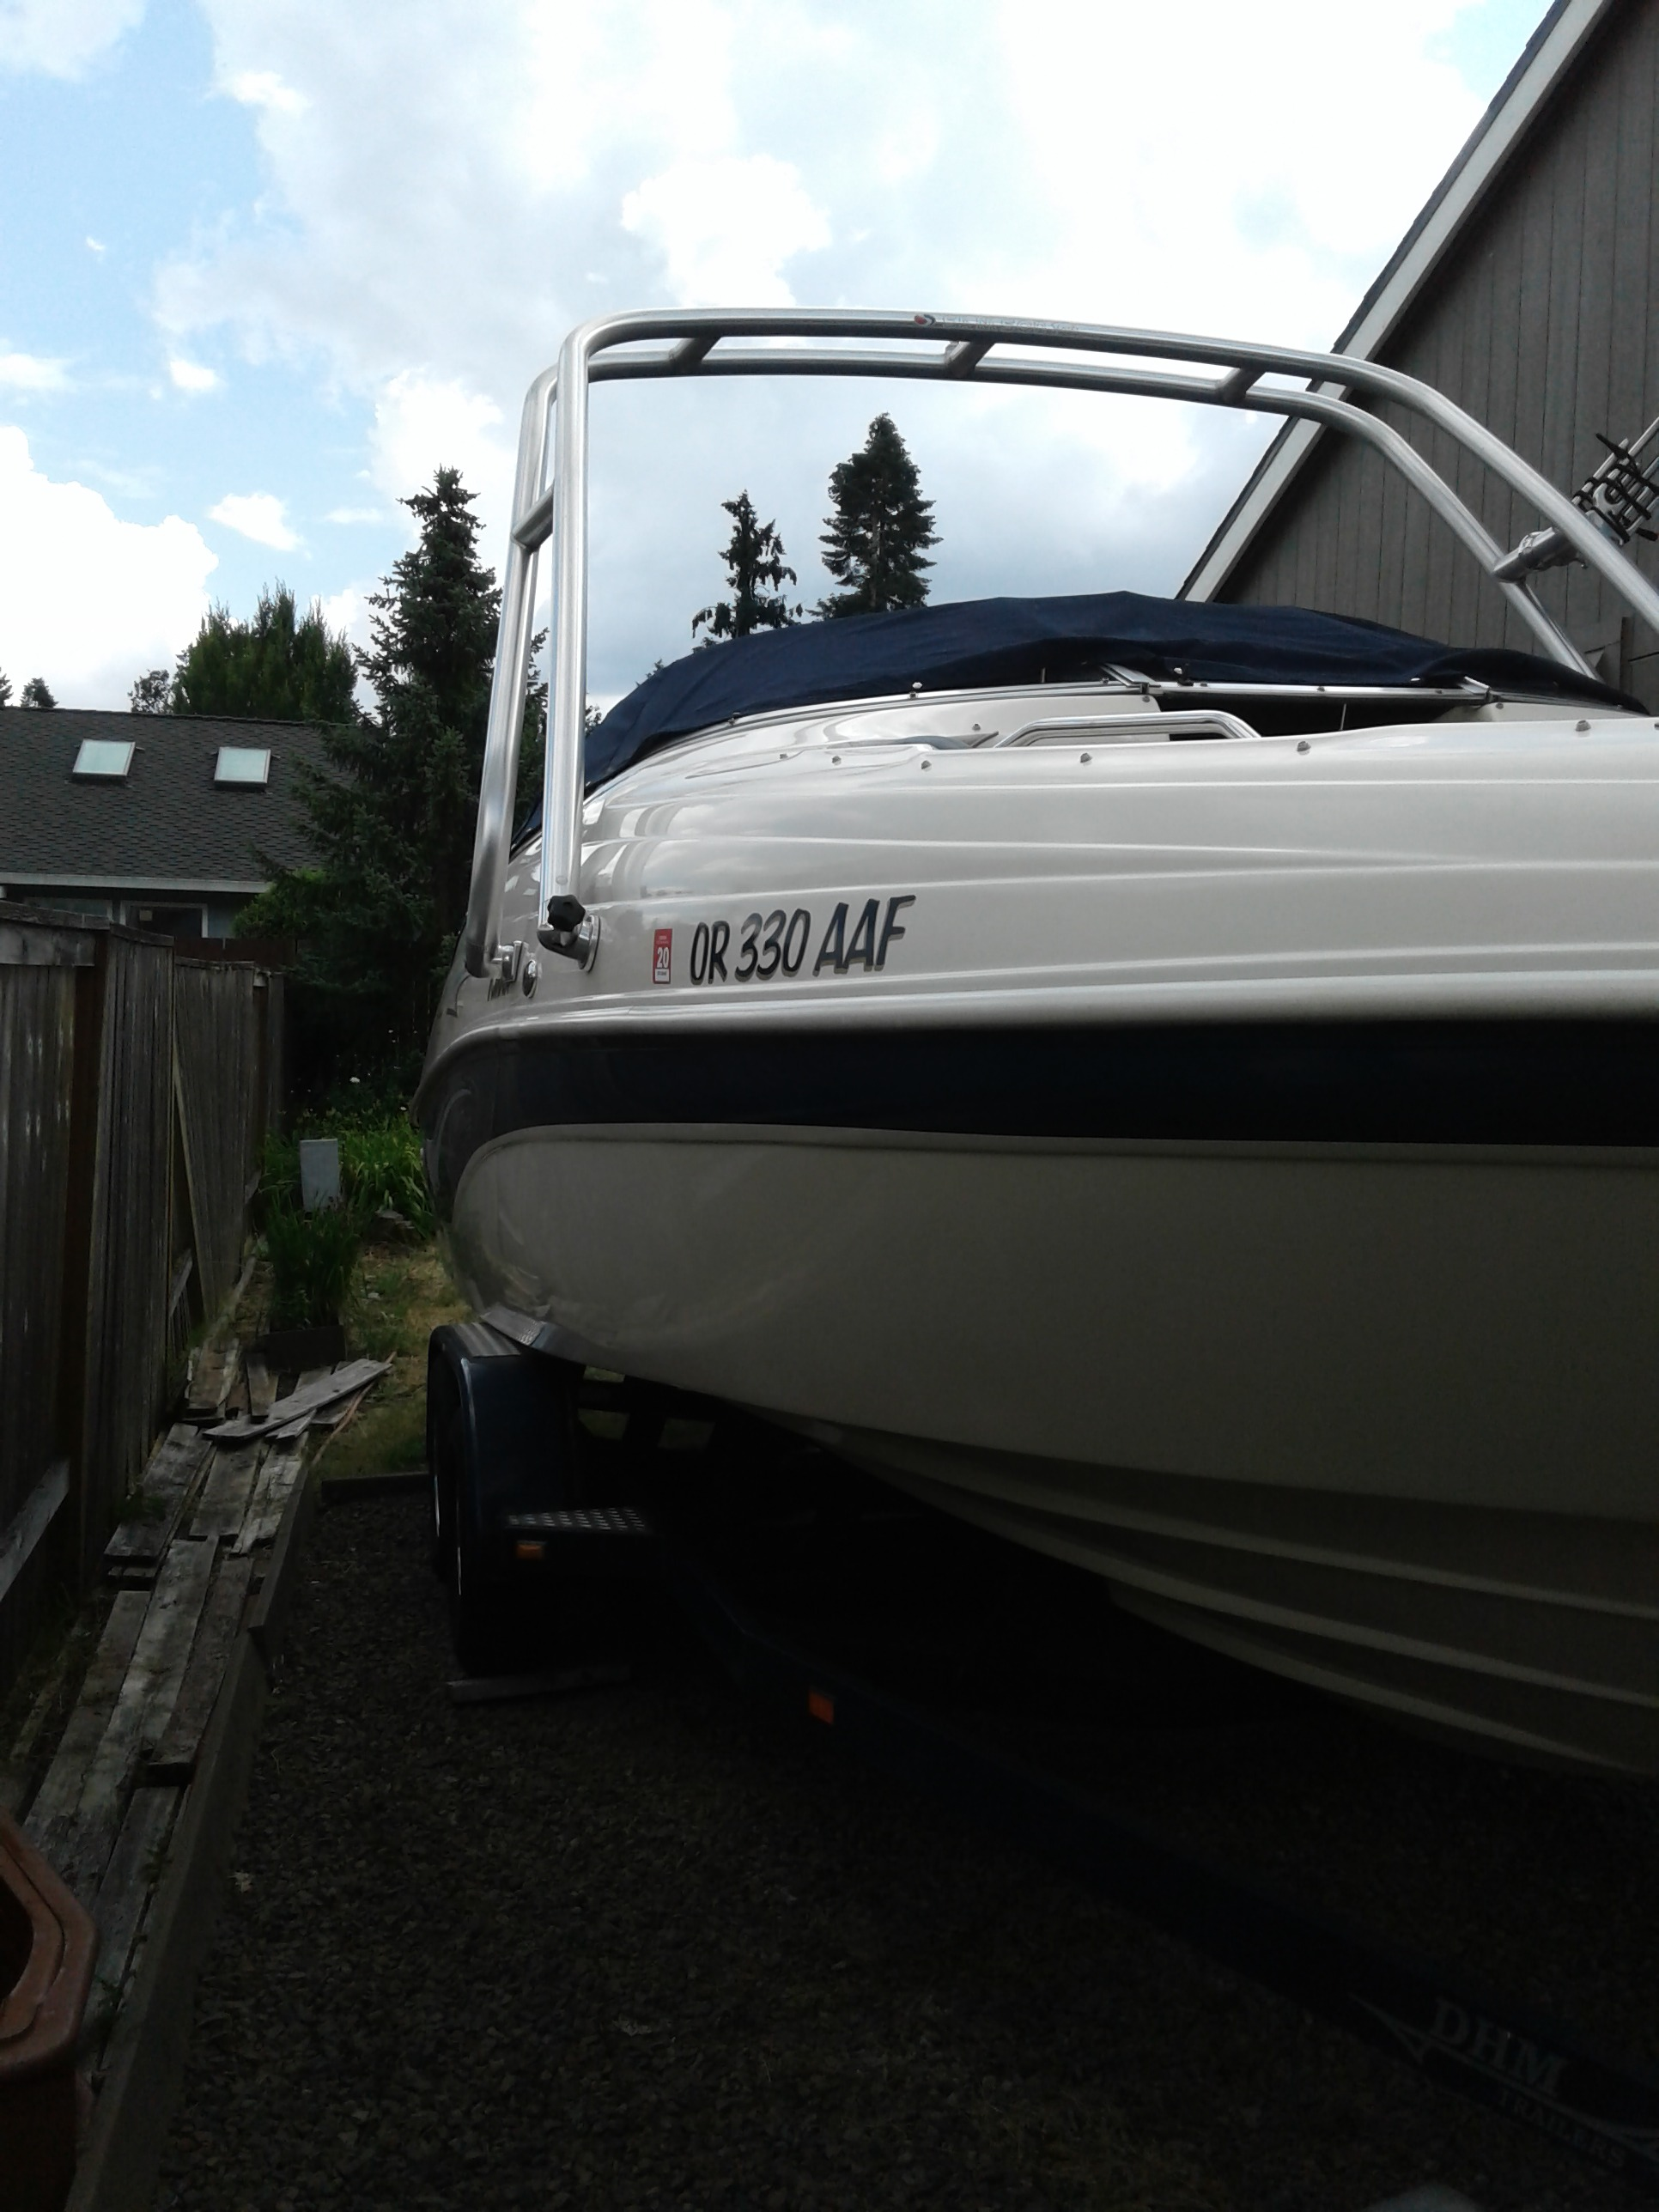 Boats for sale in 97141 - Boat Trader